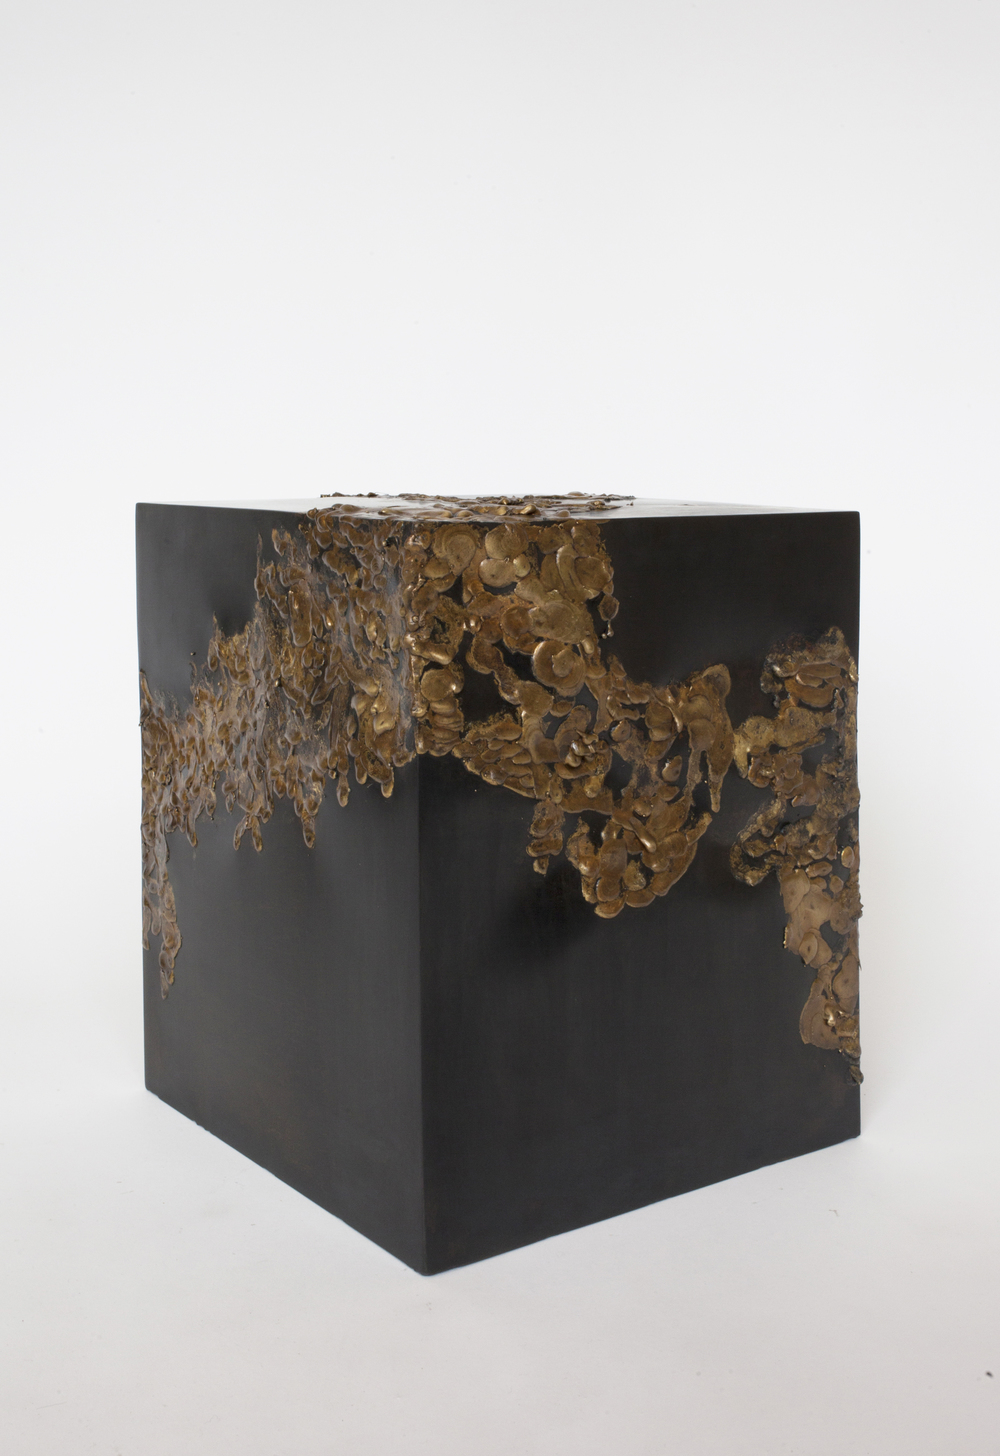 """CUBE TABLE  1 of 1  BLACKENED STEEL WITH GOLD SOLDER SMALL 12""""W x 12""""D x 15""""H LARGE 20""""W x 20""""D x 20""""H   PDF   / 1STDIBS  IN STOCK / MADE TO ORDER"""